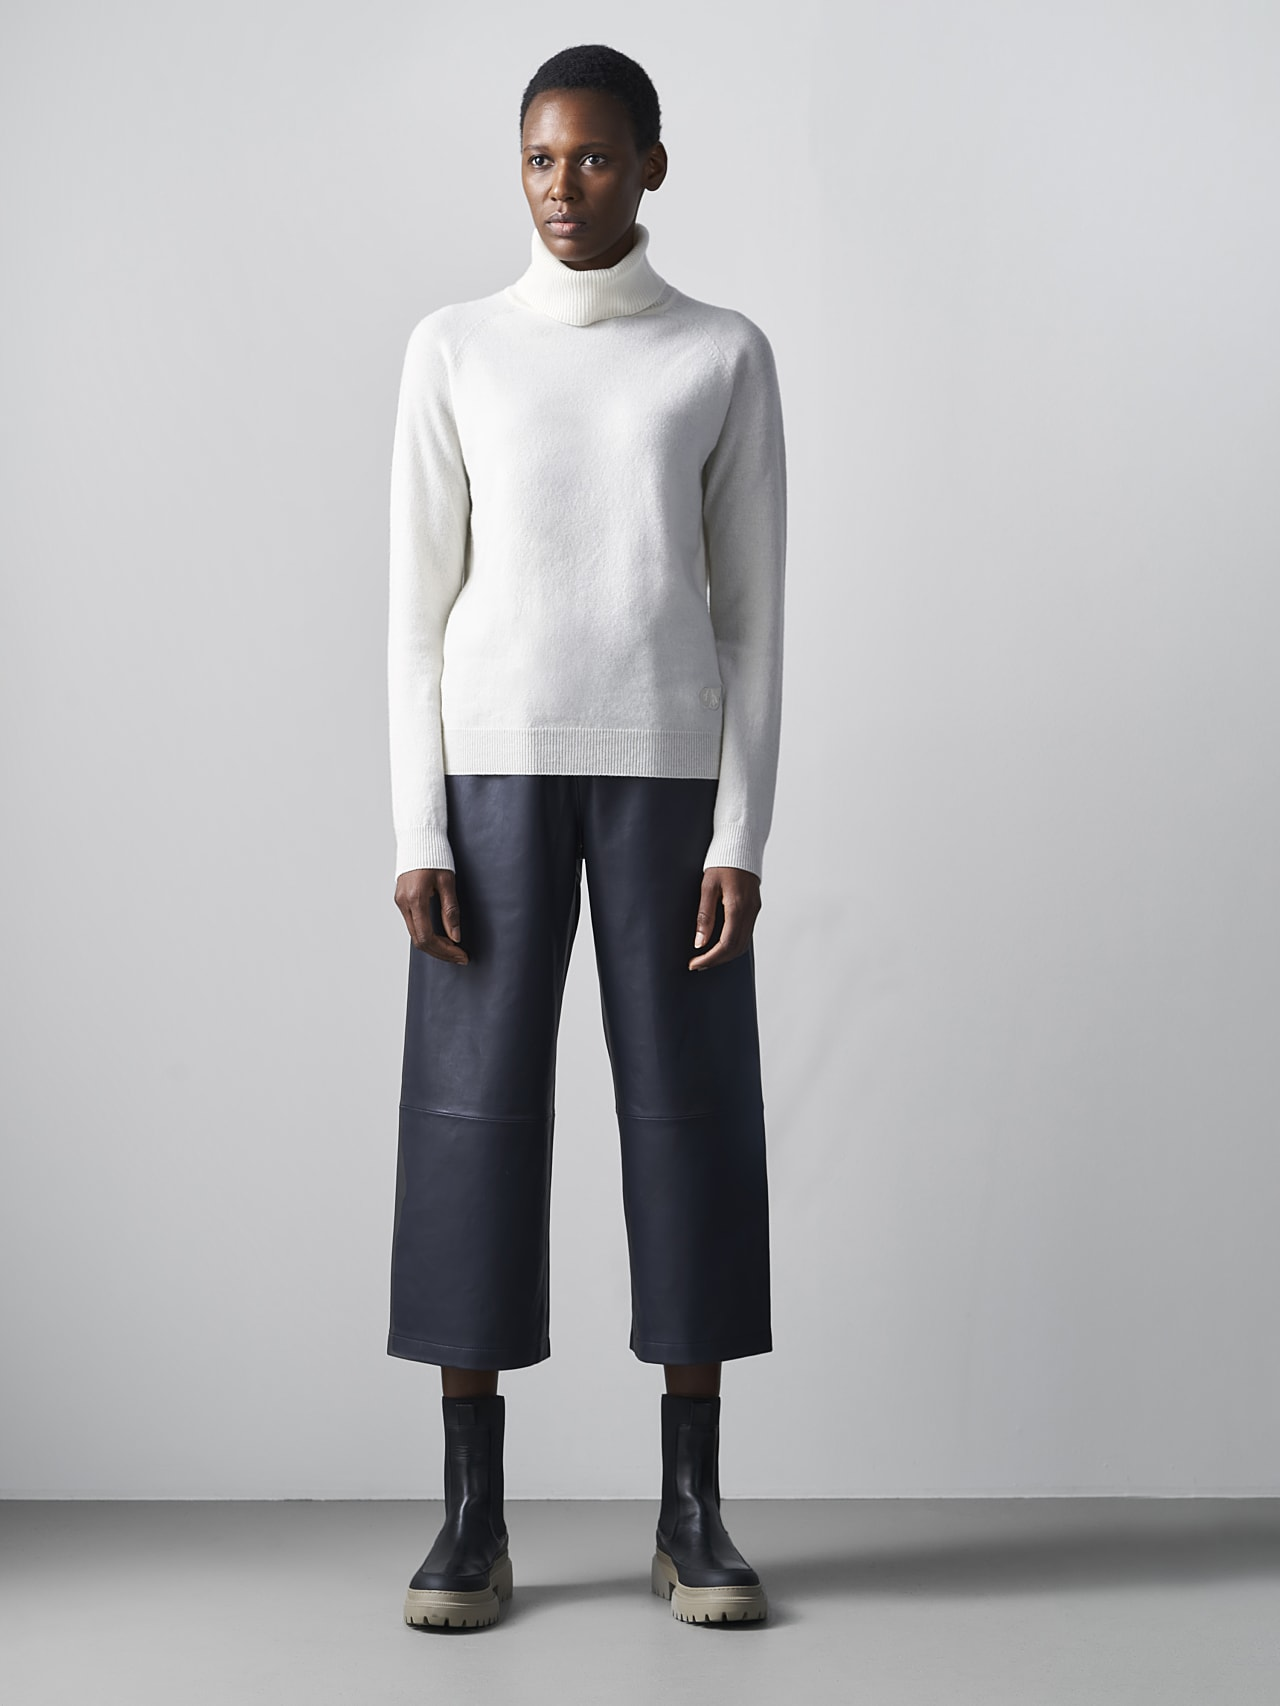 FLAMY V1.Y5.02 Seamless 3D Knit Merino-Cashmere Turtle Neck offwhite Front Alpha Tauri